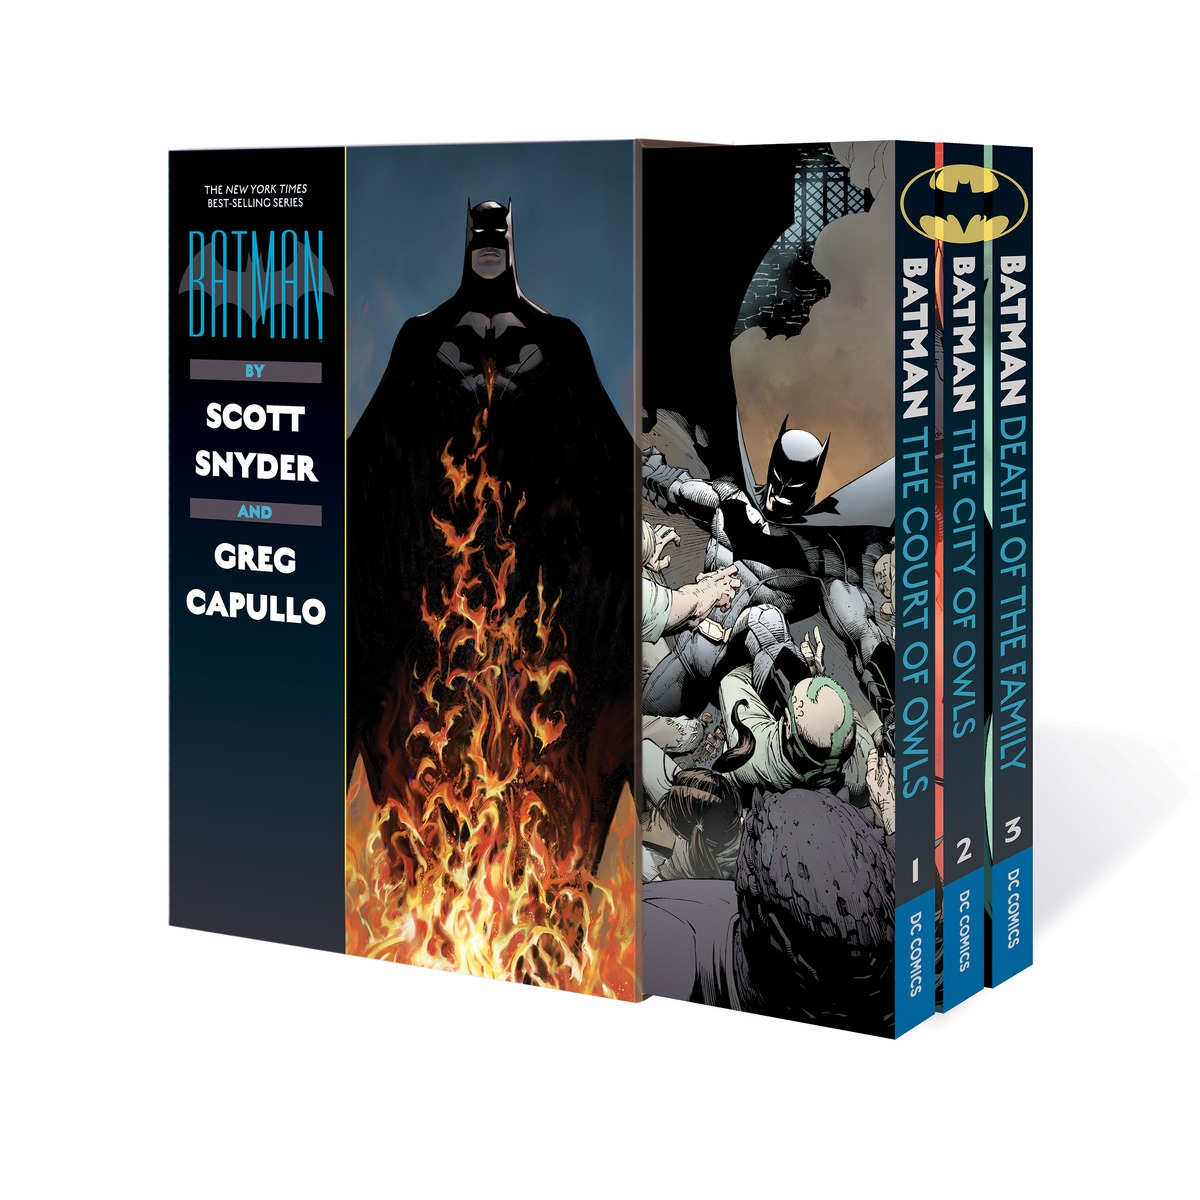 Batman by Scott Snyder & Greg Capullo Box Set karin kukkonen studying comics and graphic novels